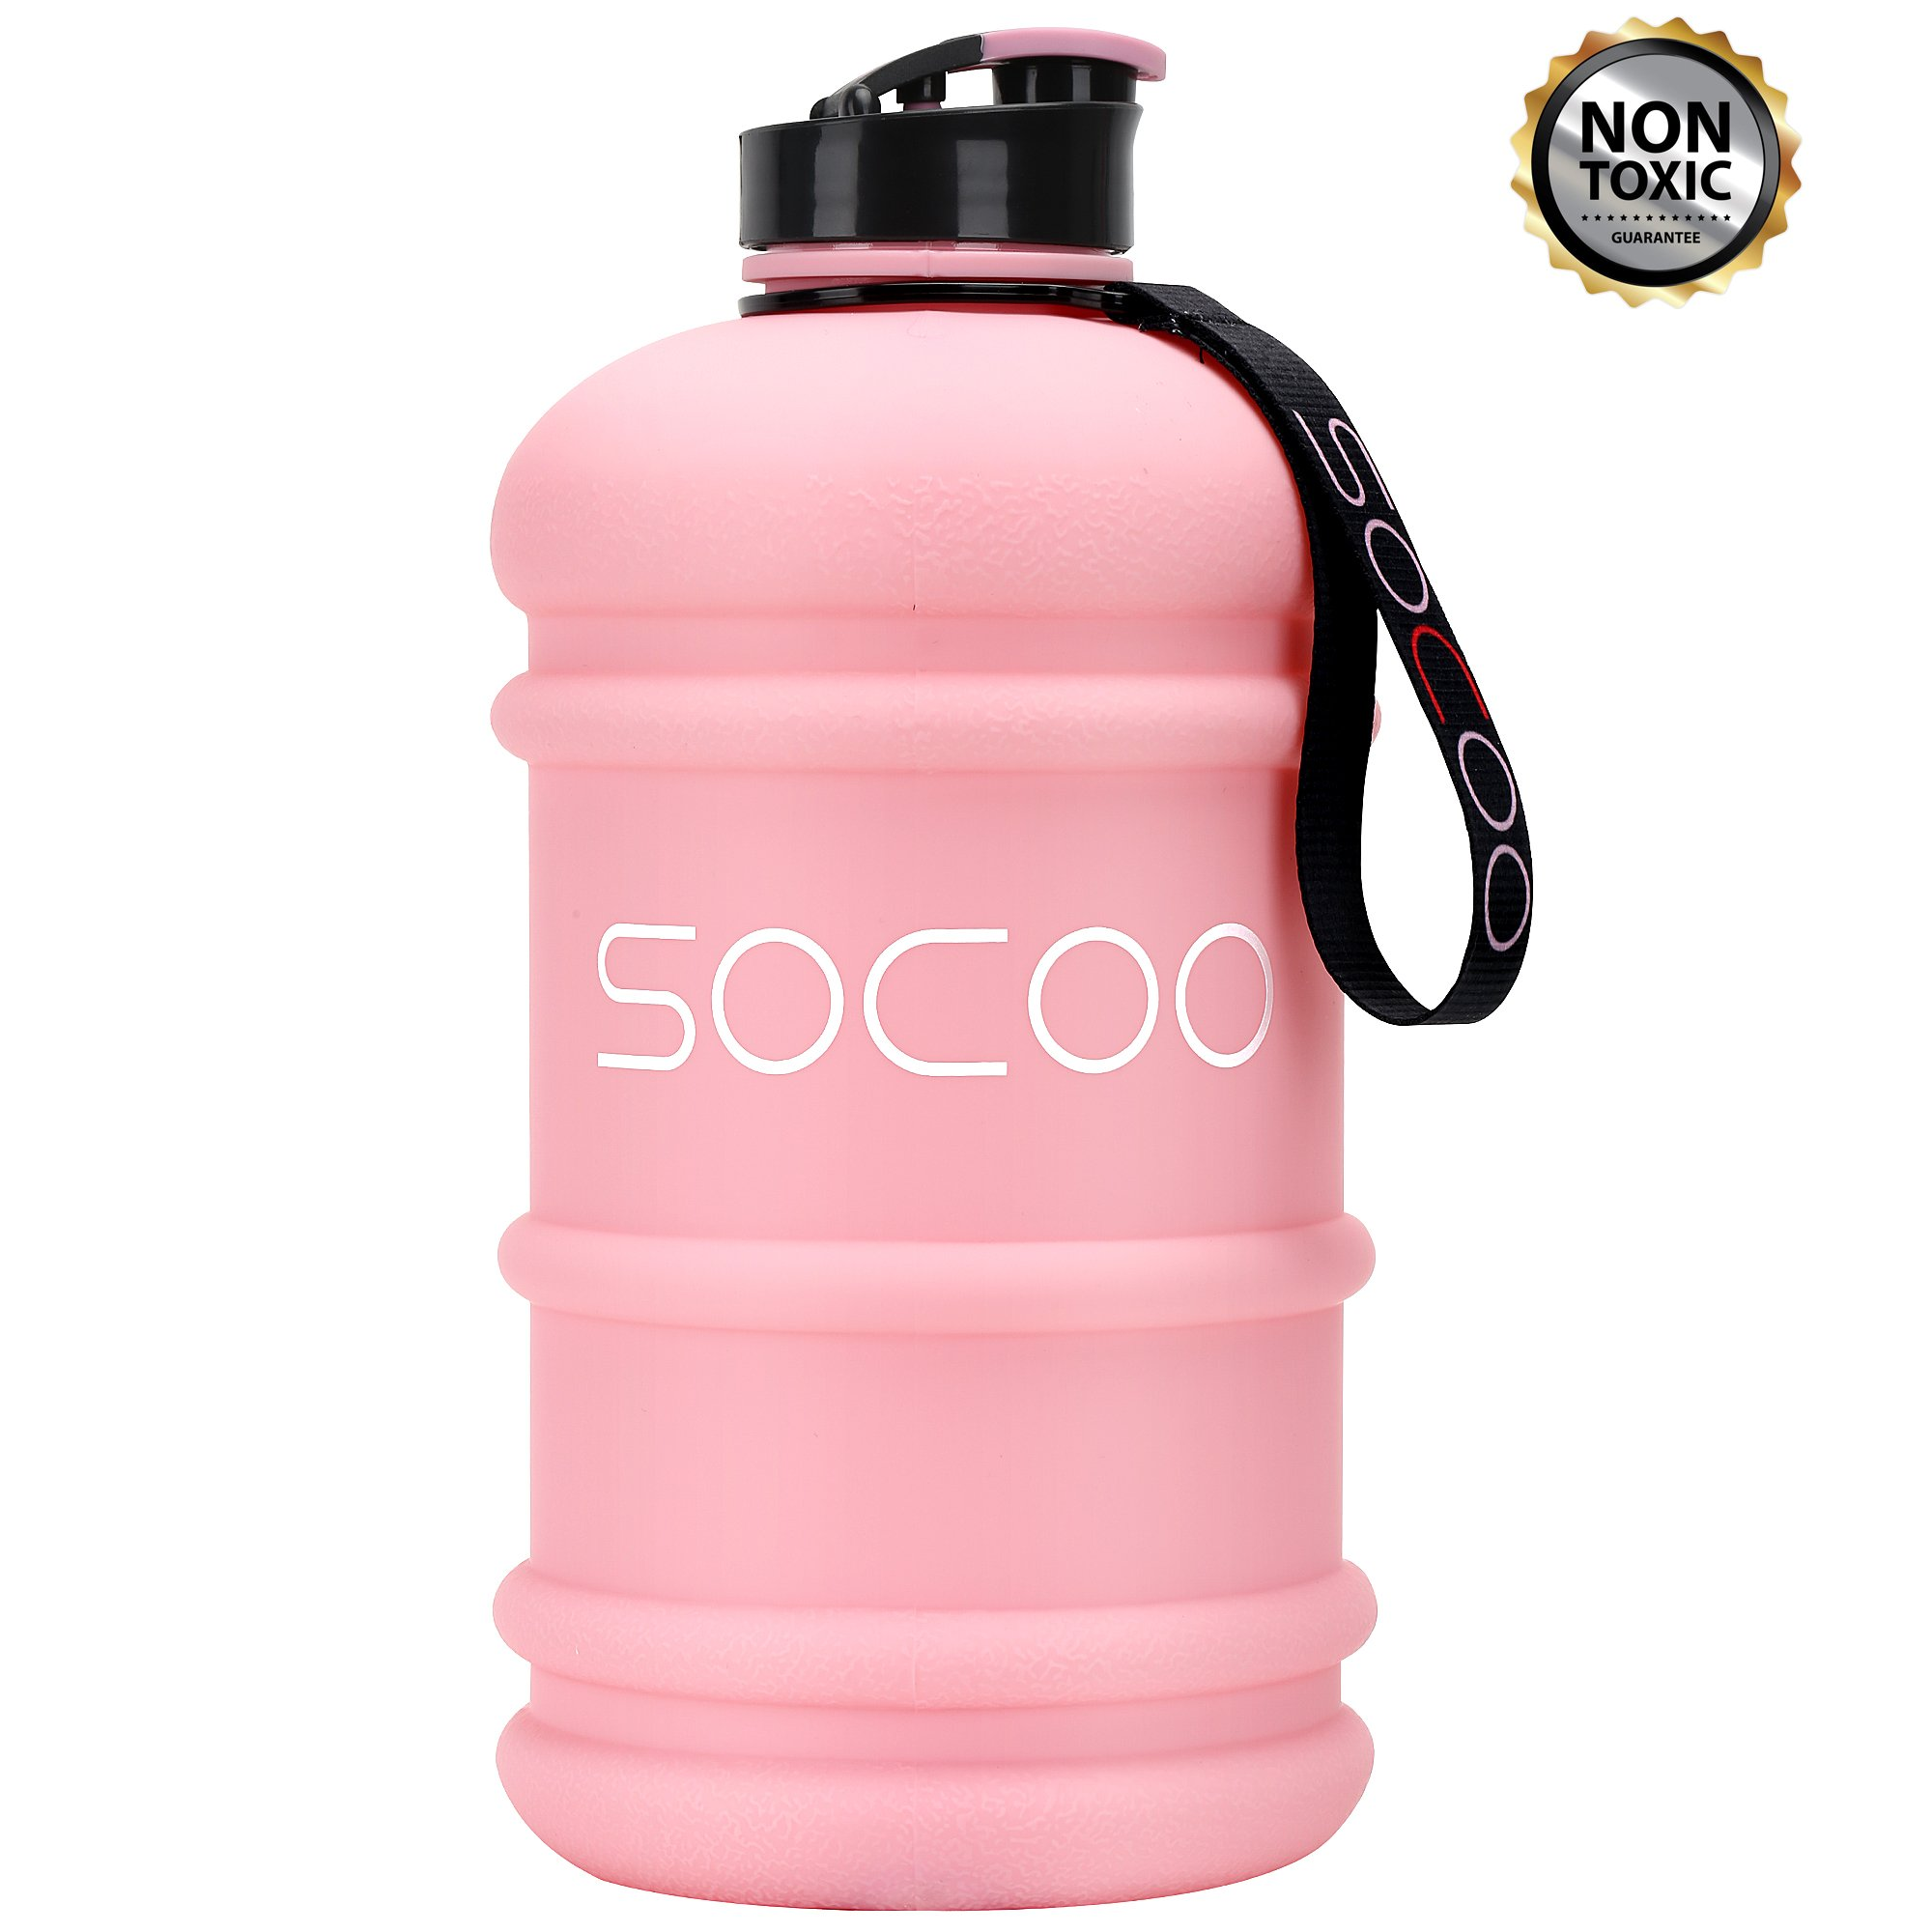 Water Bottle Big 2.2Liter Cool Rubber Coating Reusable Plastic Sports Water Bottle Leak Proof BPA Free Gym Fitness Large Water Jug with Spout (Rubber-Coating Pink)